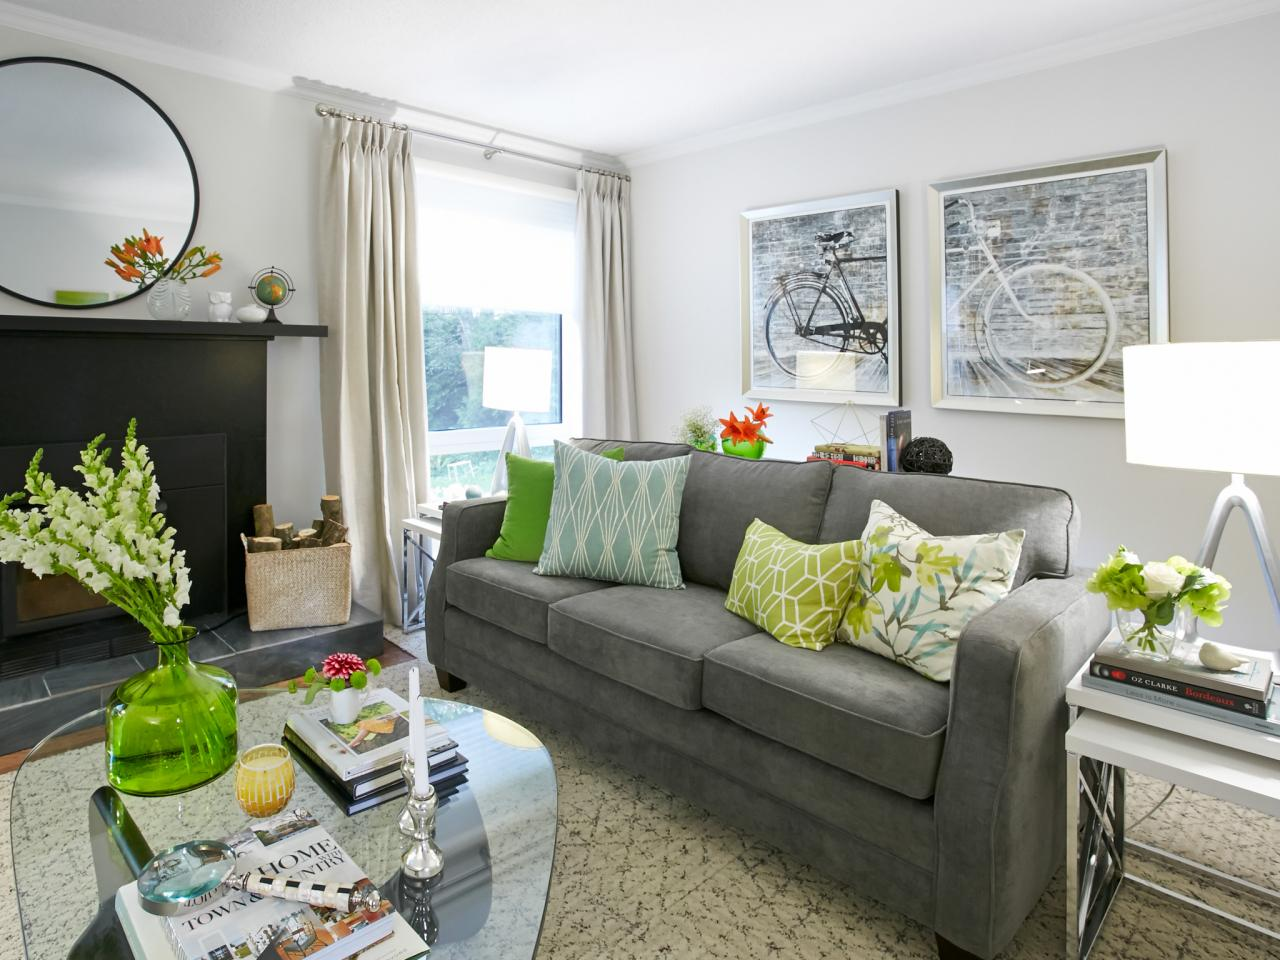 Living Room Shows Property Property Brothers Drew And Jonathan Scott On Hgtv's Buying And .